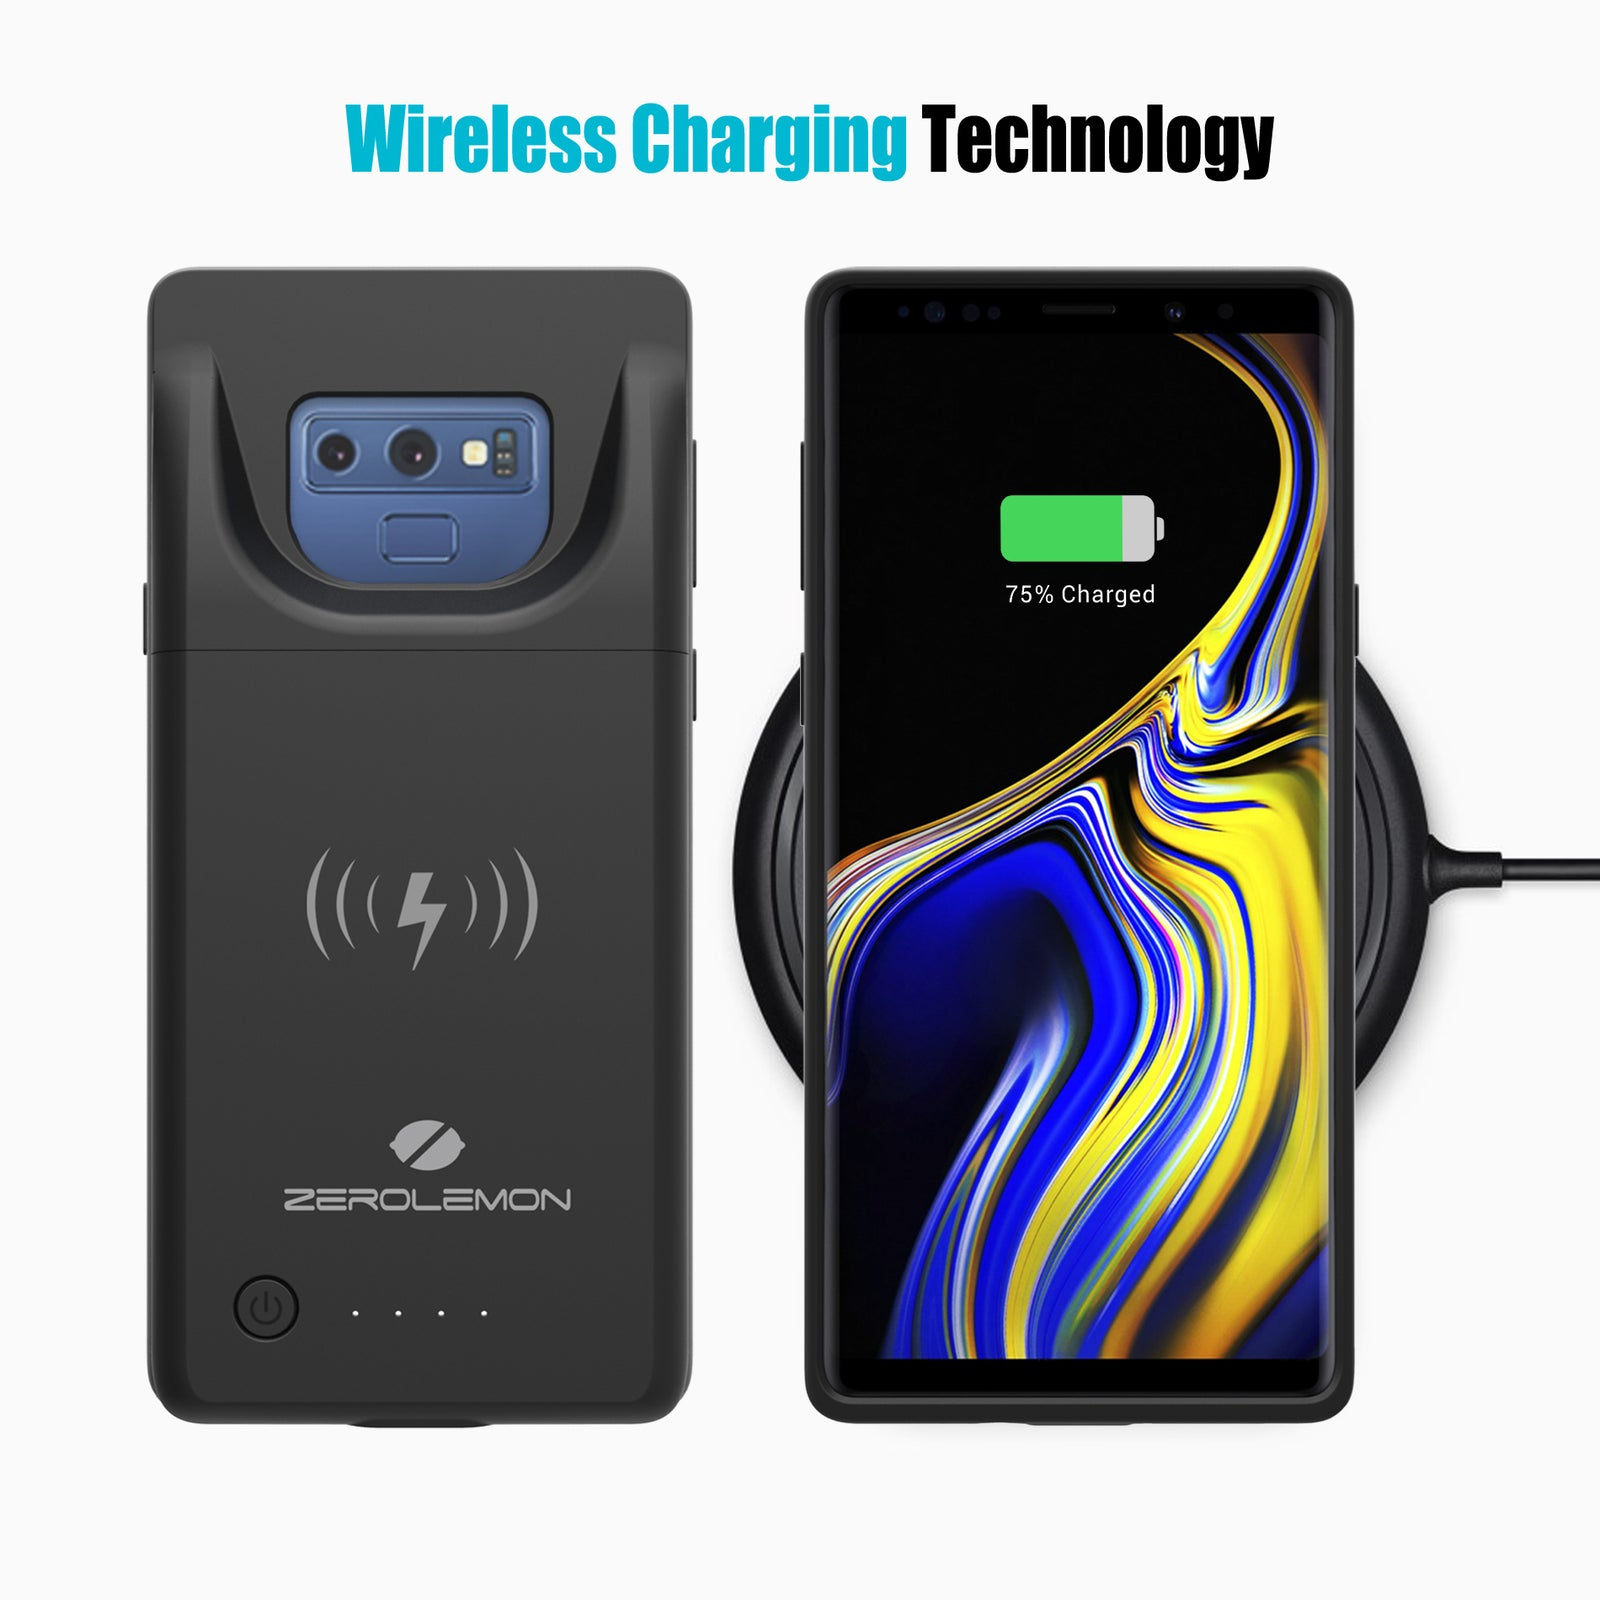 Galaxy Note 9 5000mAh Wireless Charging Battery Case